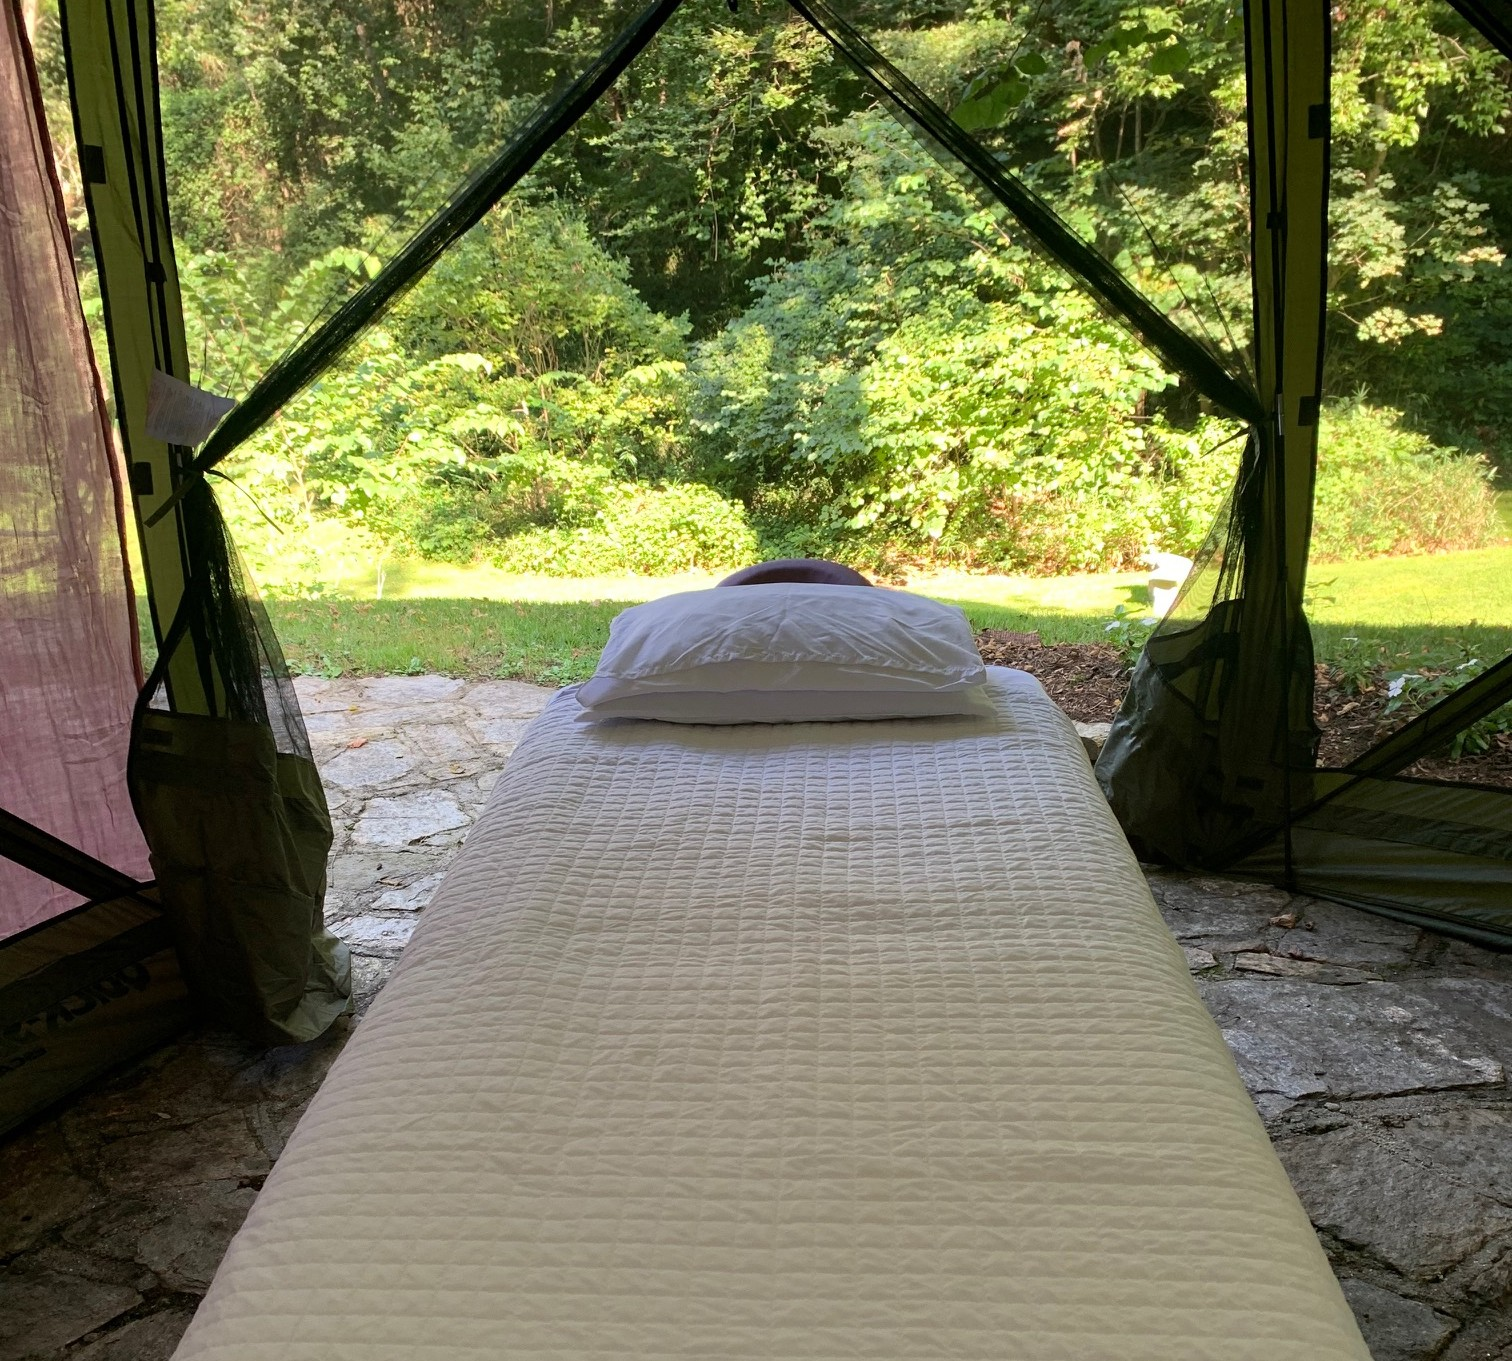 massage table in backyard at Pinecrest